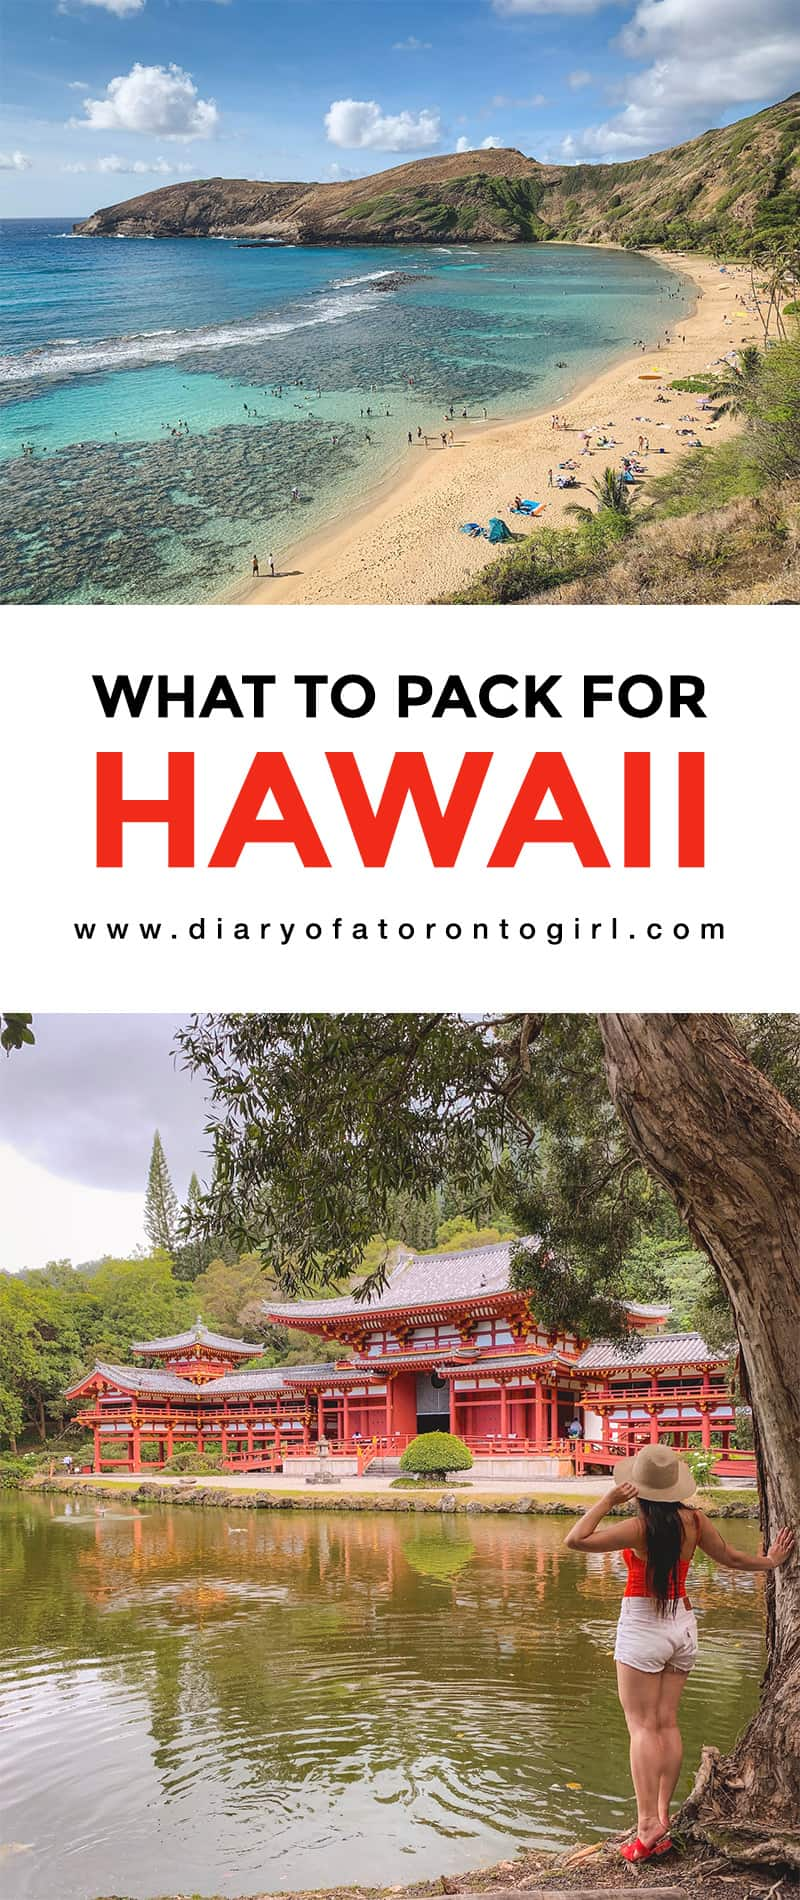 What to pack and what to wear in Hawaii's hot weather! We spent 10 days in sunny Oahu, and I've included photos of all the outfits I wore during our vacation.